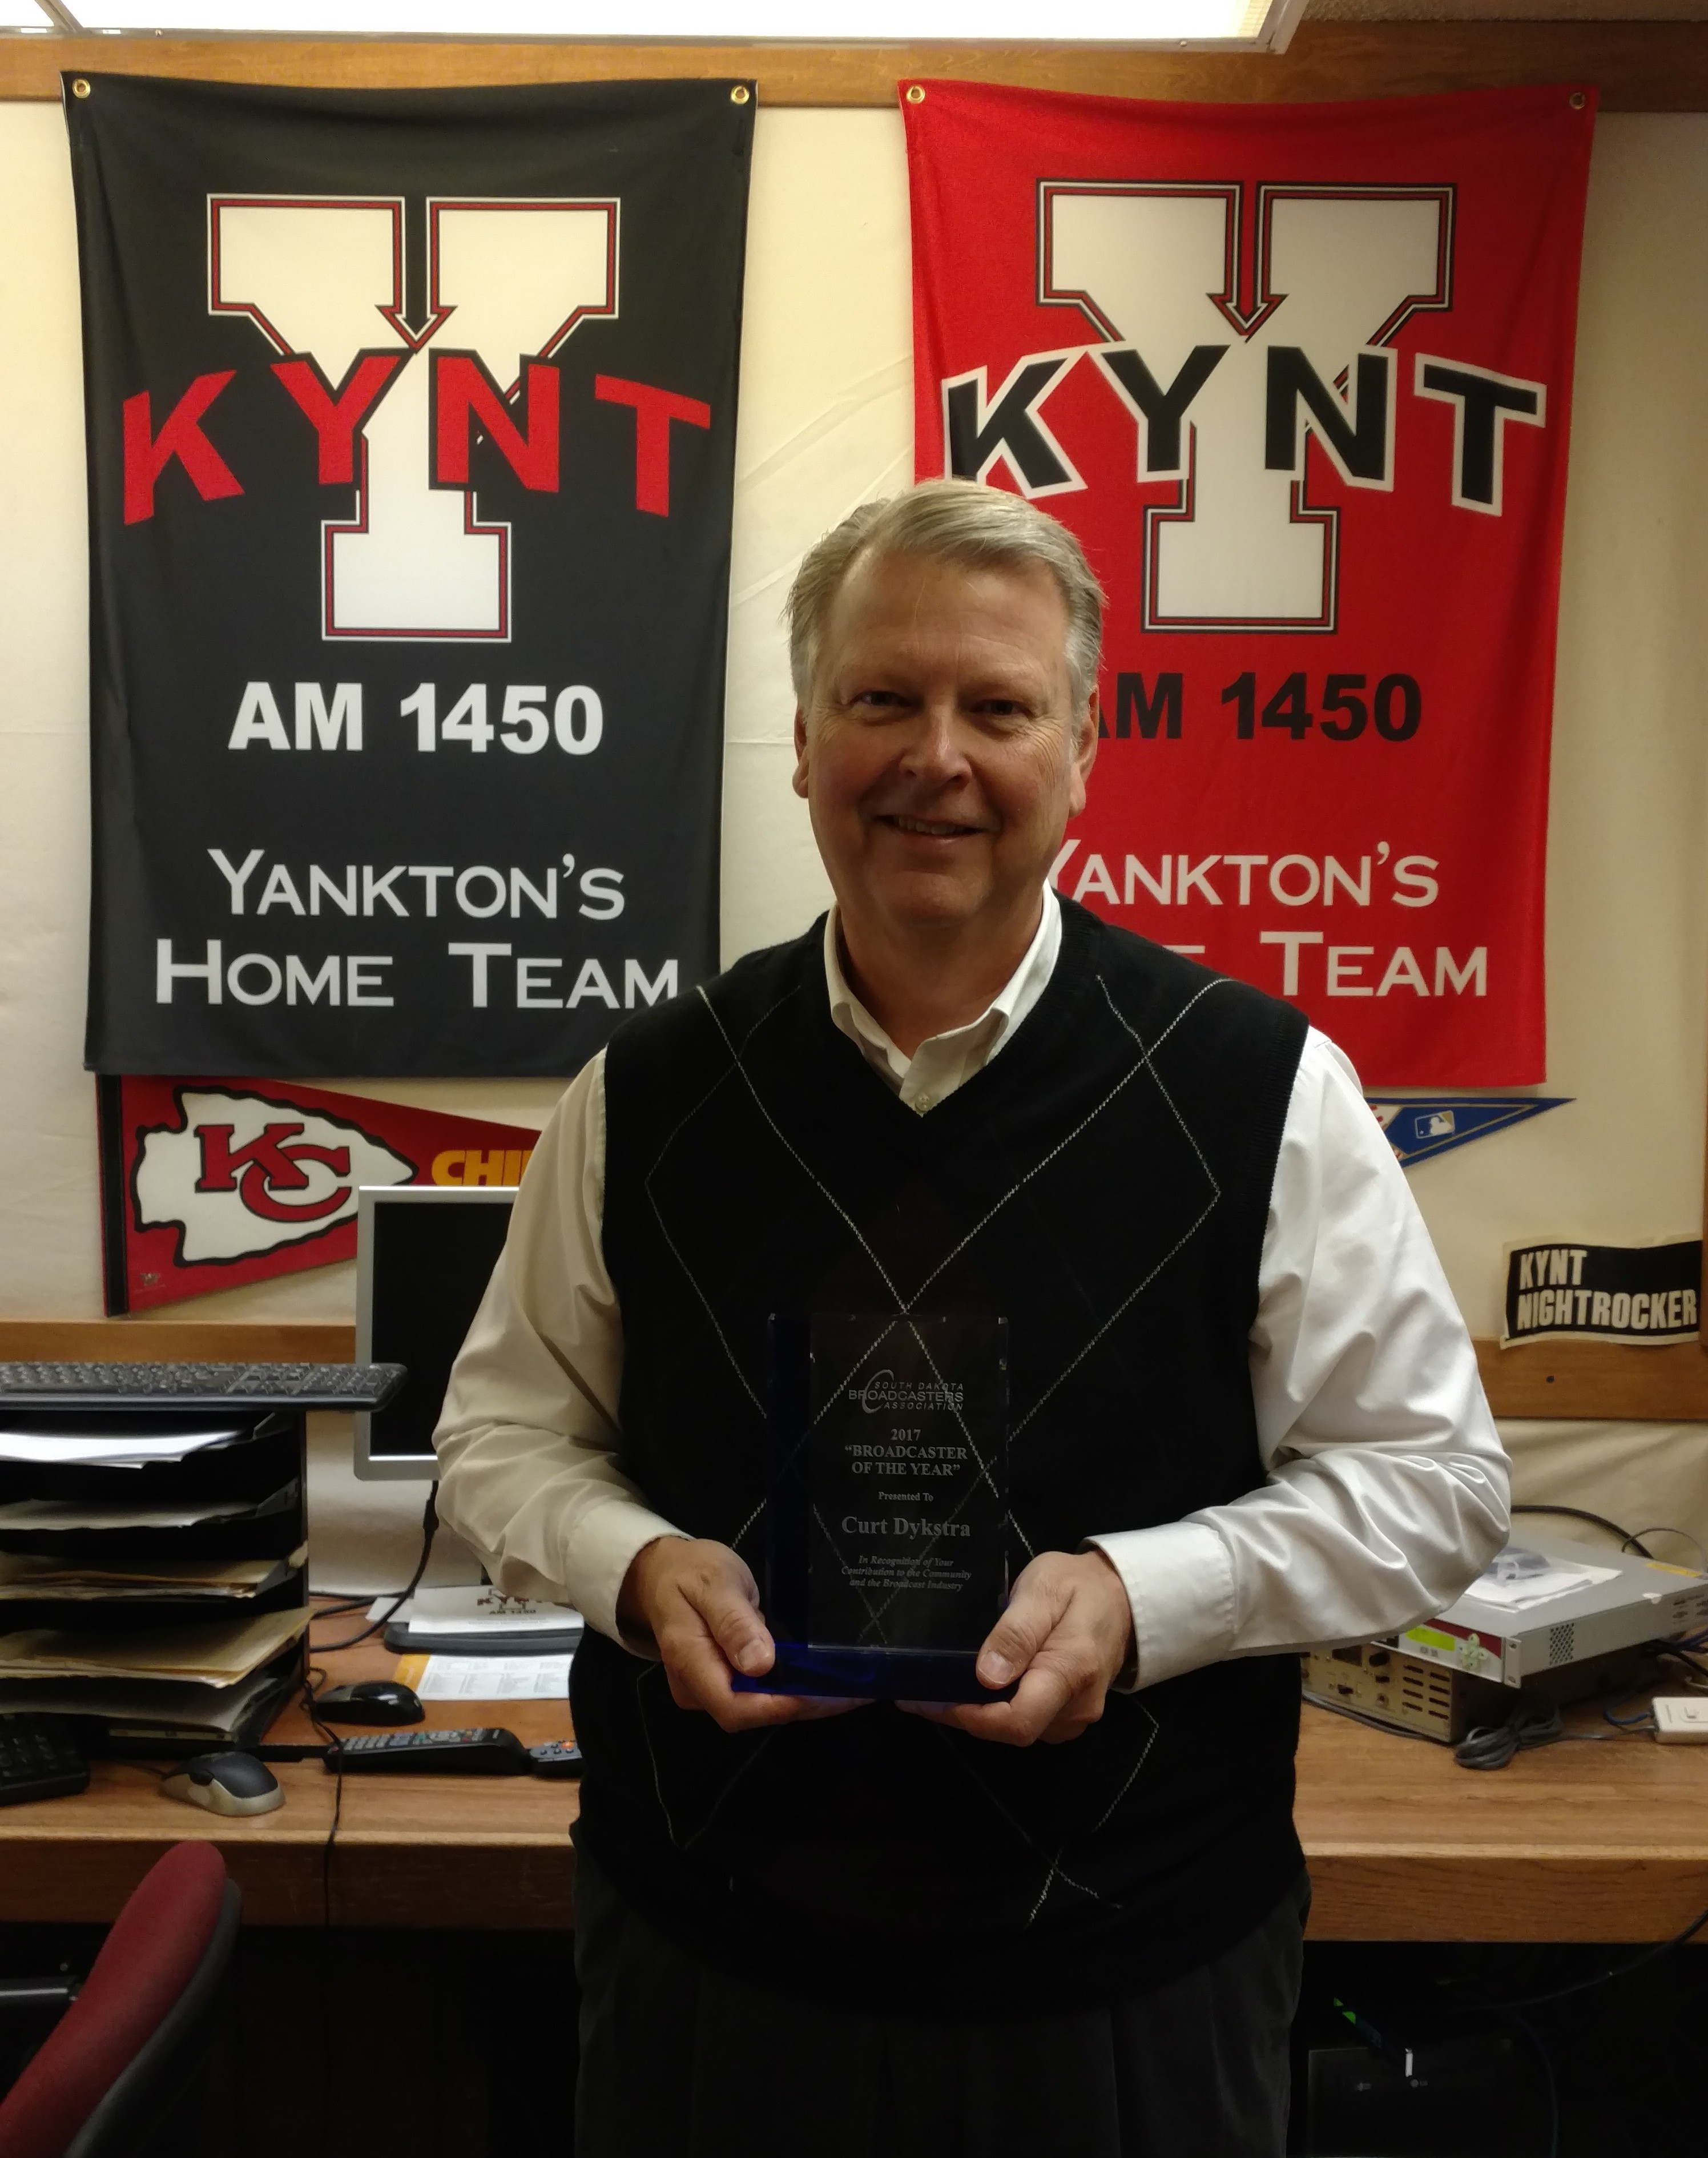 2017 Broadcaster of the Year Dykstra